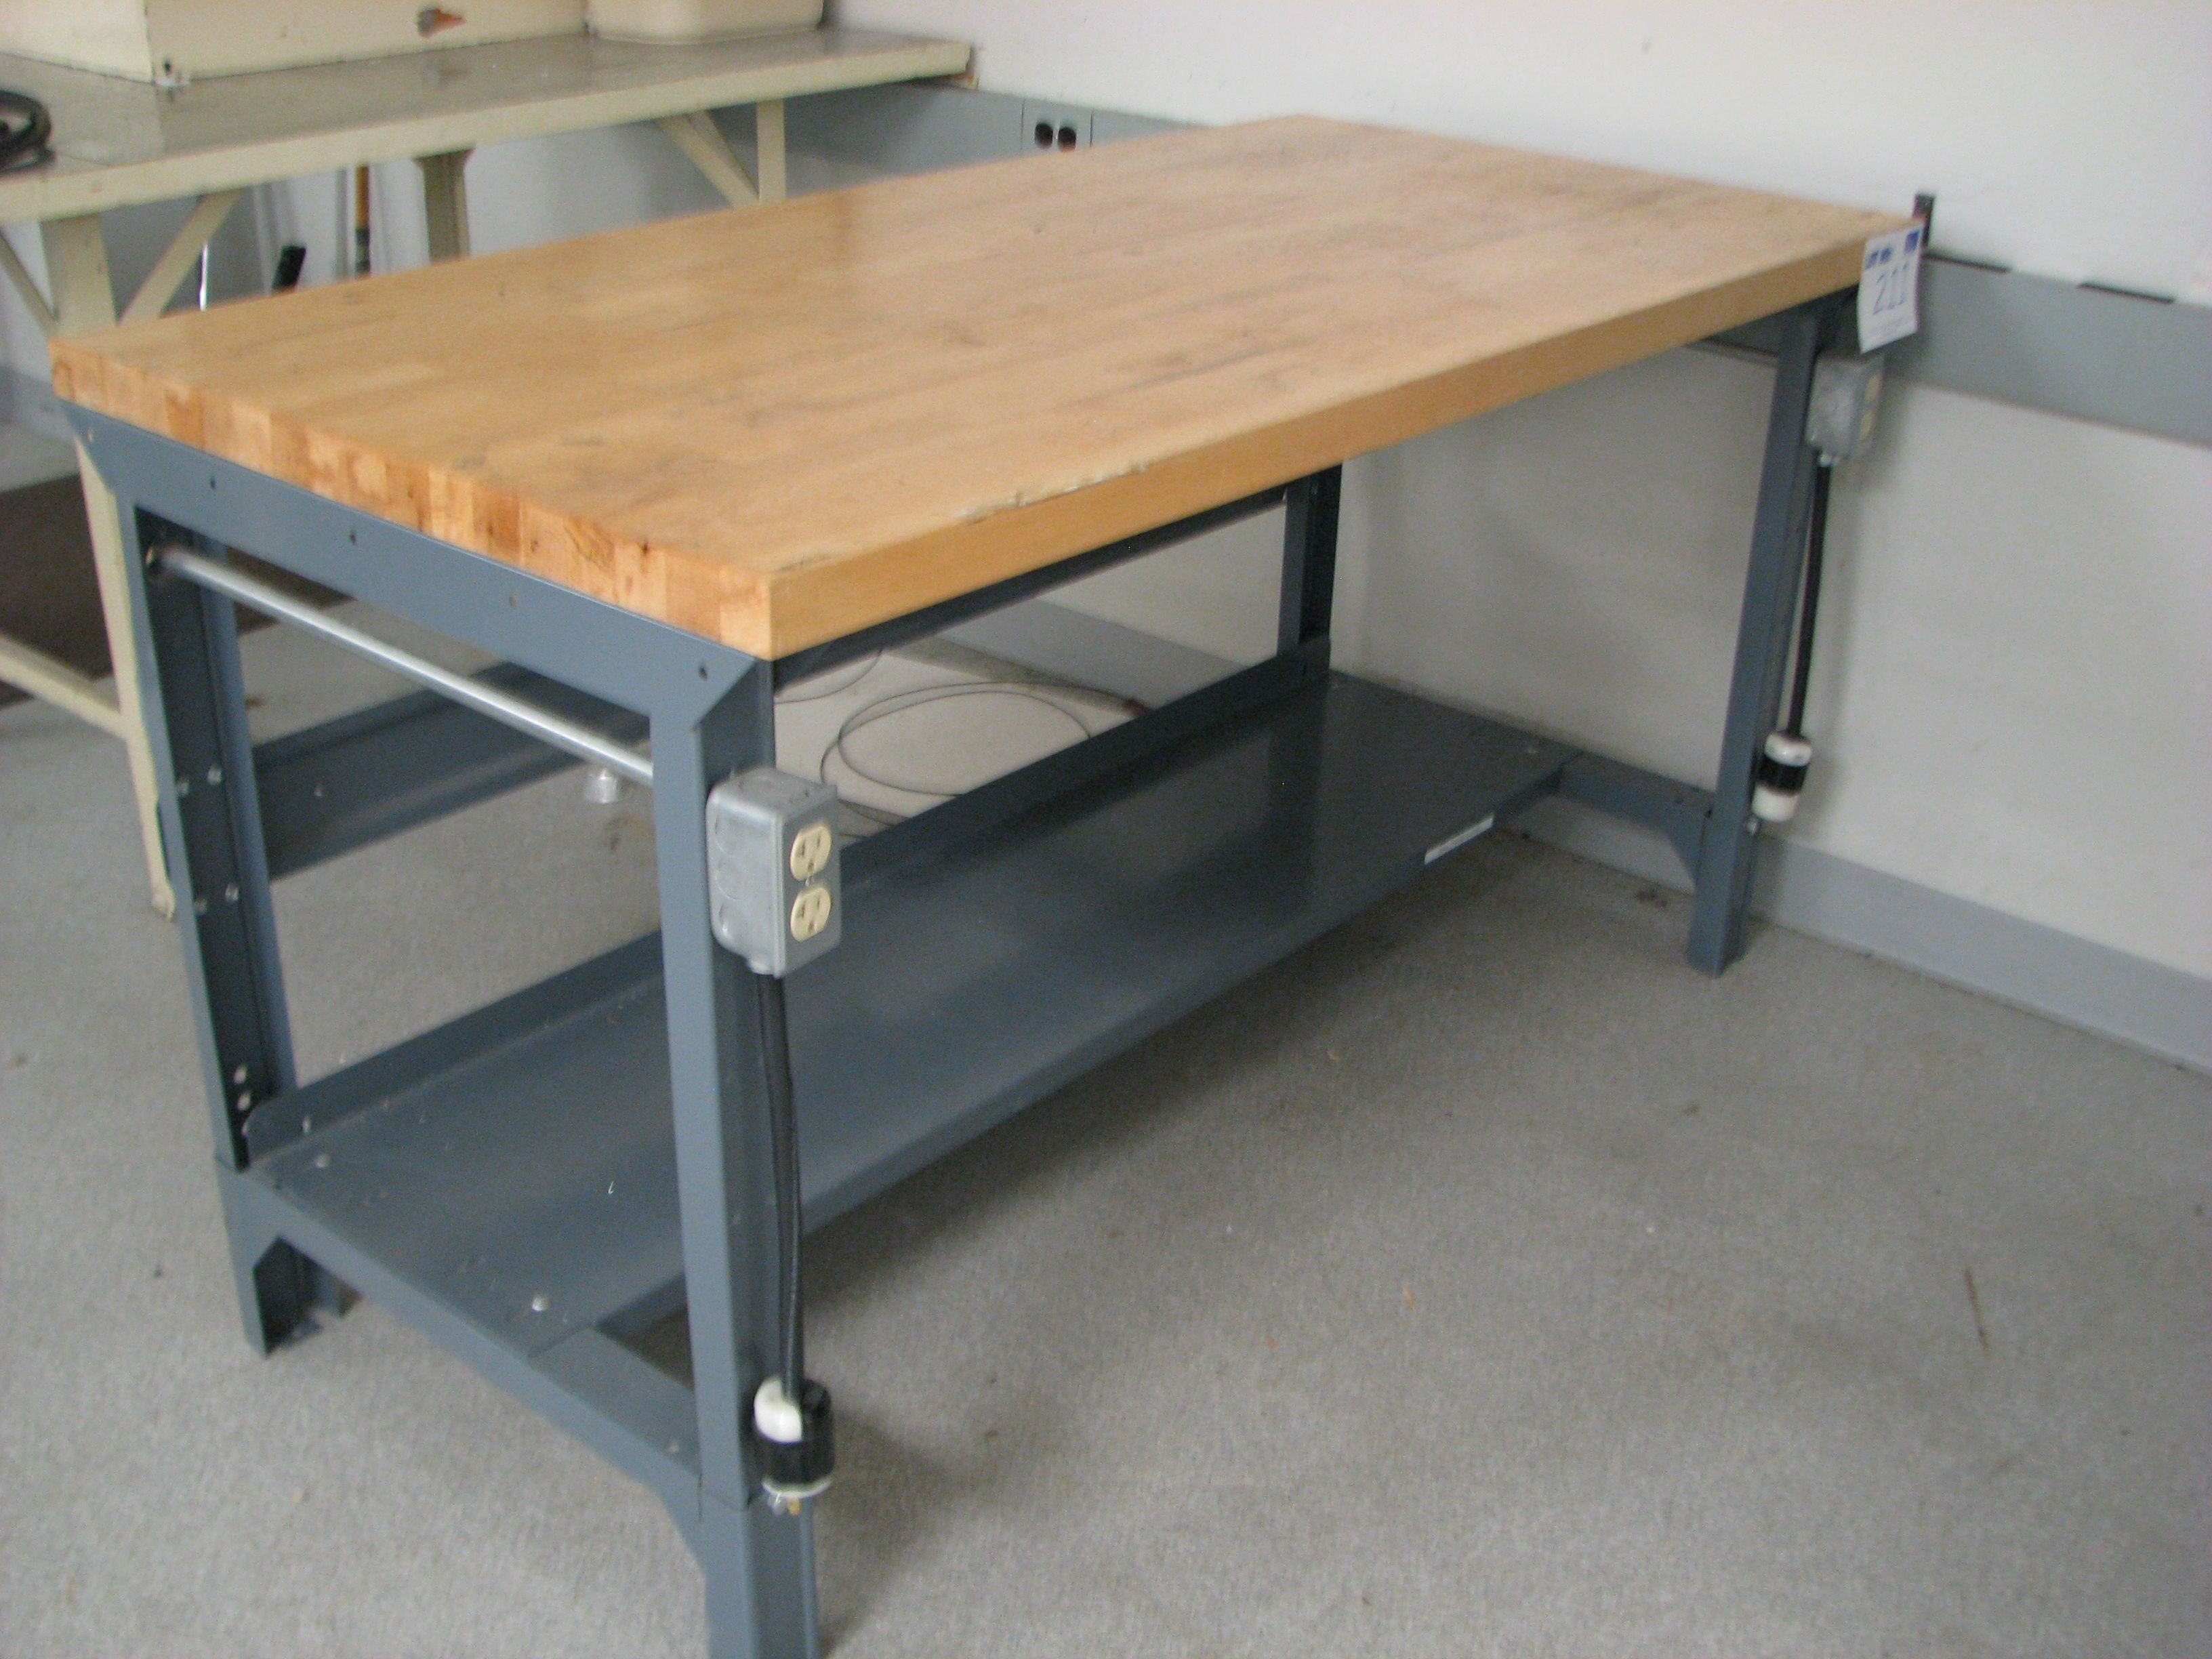 6 Foot Long Butcher Block Top Workbench W Built In Power